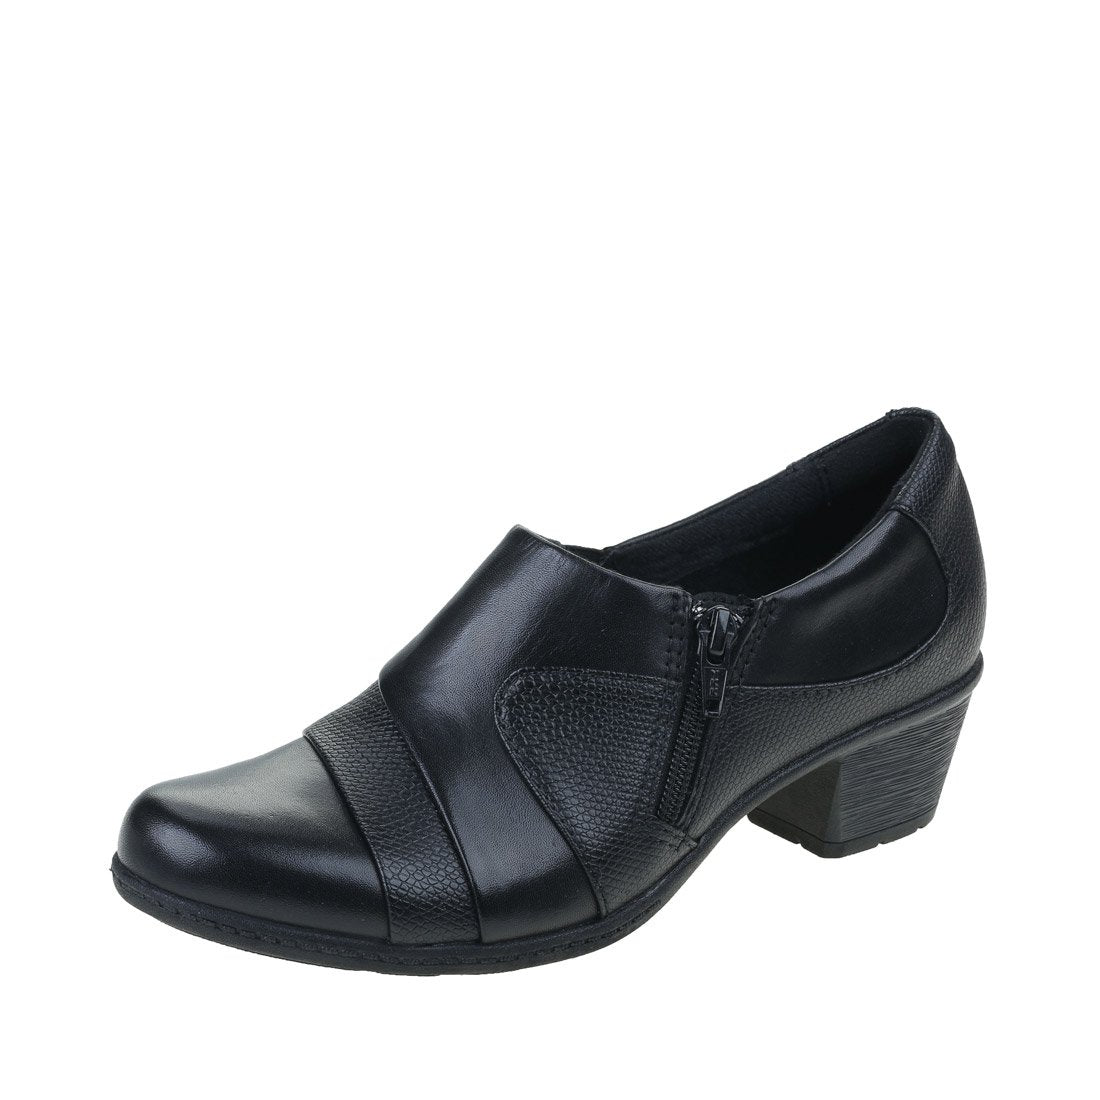 Planet shoes - thea - womens shoes